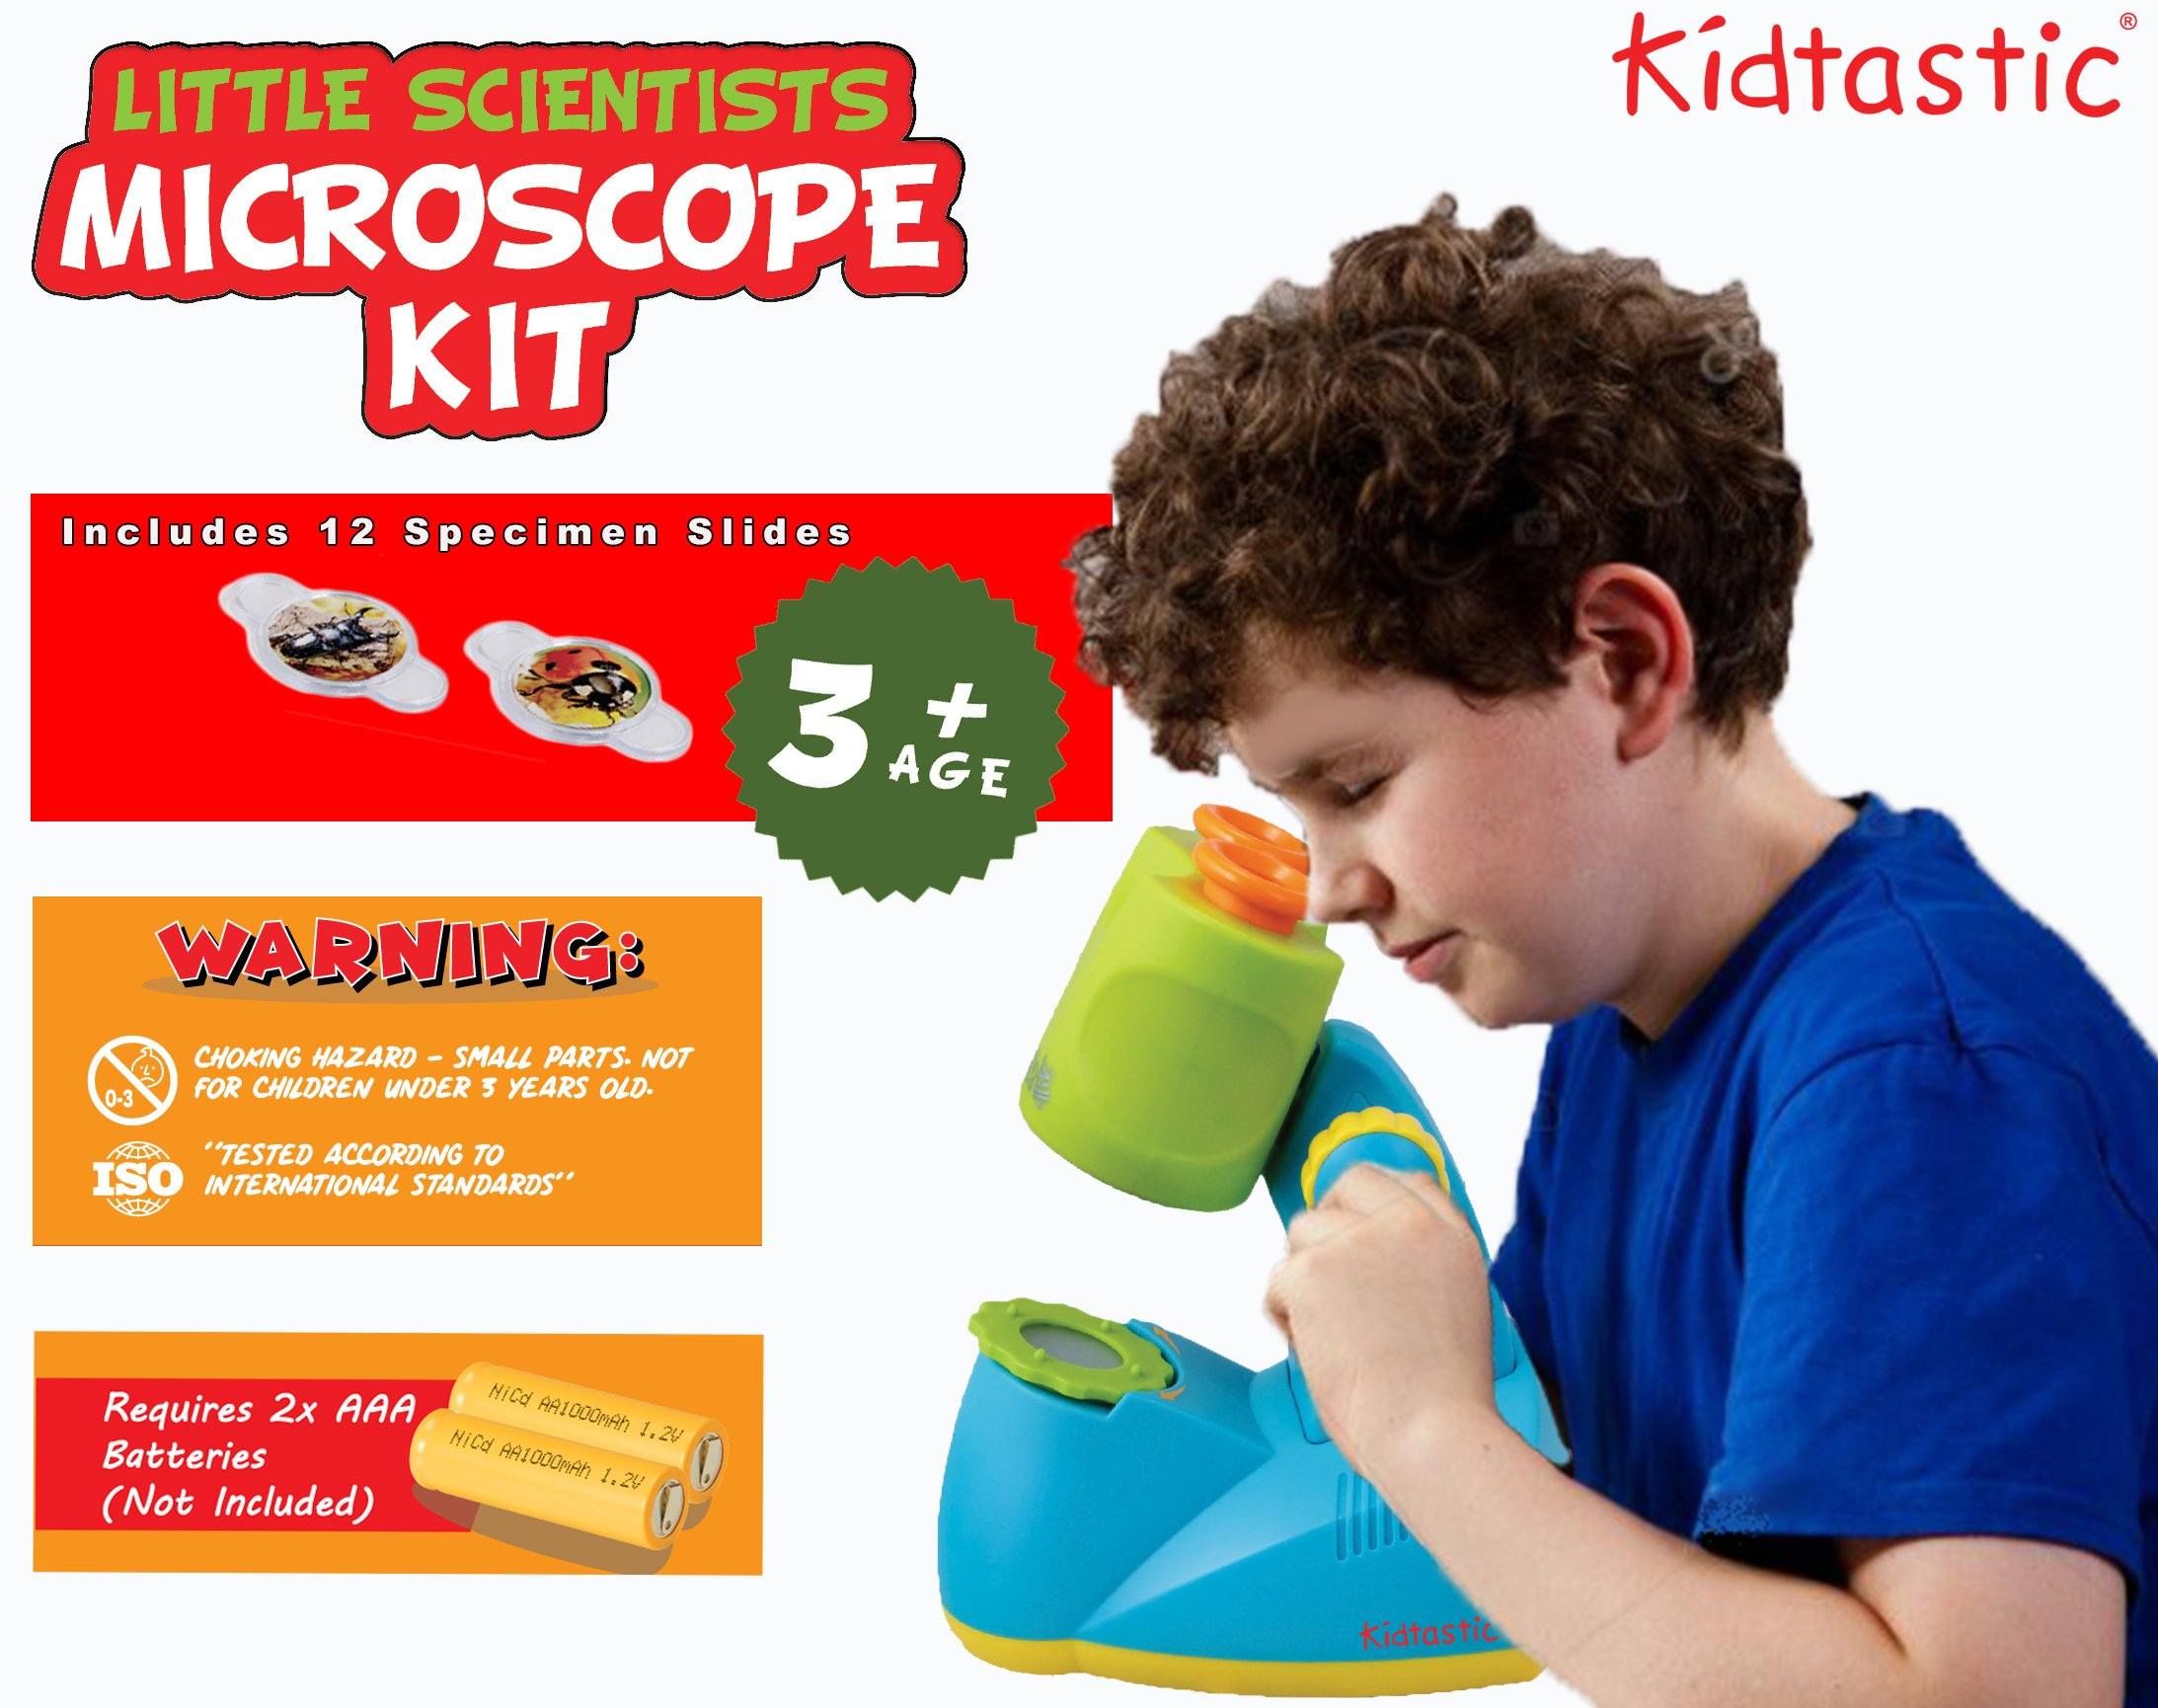 Kidtastic Microscope Science Kit for Kids - Fun Learning Toys for Preschoolers - STEM Toy for 3 Year olds - with 12 Slides Animals & Nature, 8X Zoom, LED Light - for Ages 3, 4, 5, 6 and up by Kidtastic (Image #4)